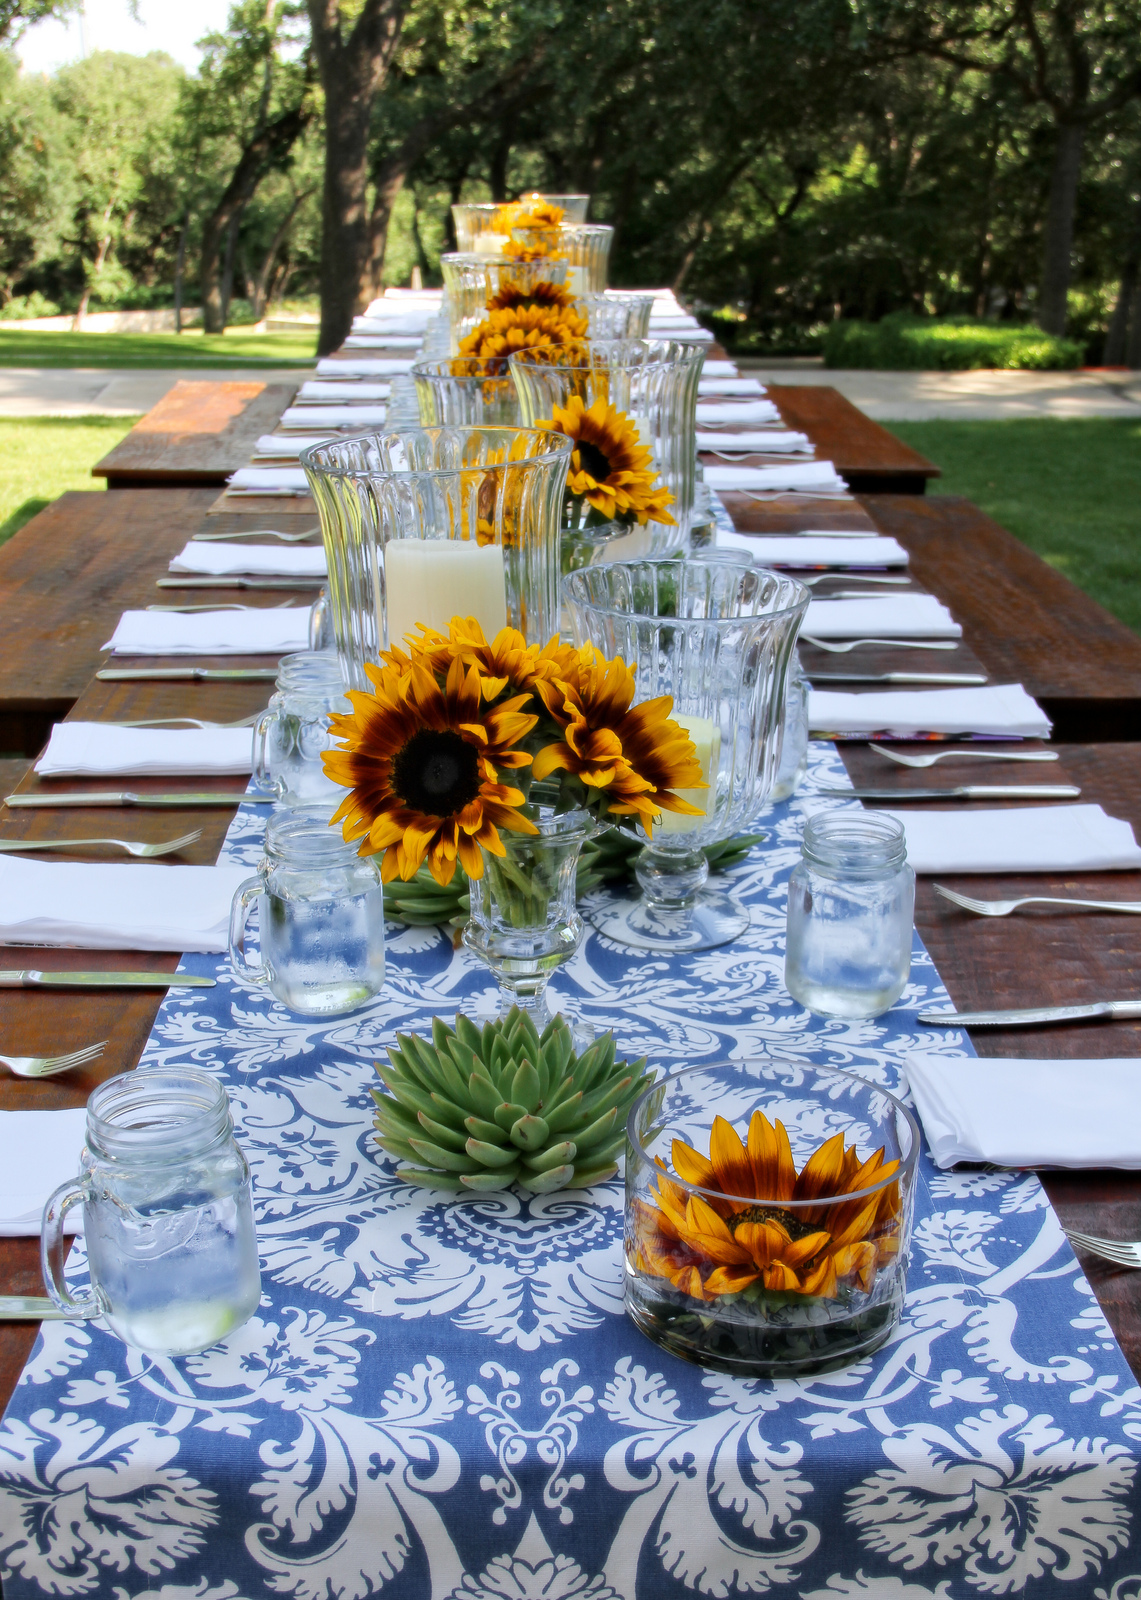 Royal Garden Tisch 37 Table Decoration Ideas For A Summer Garden Party